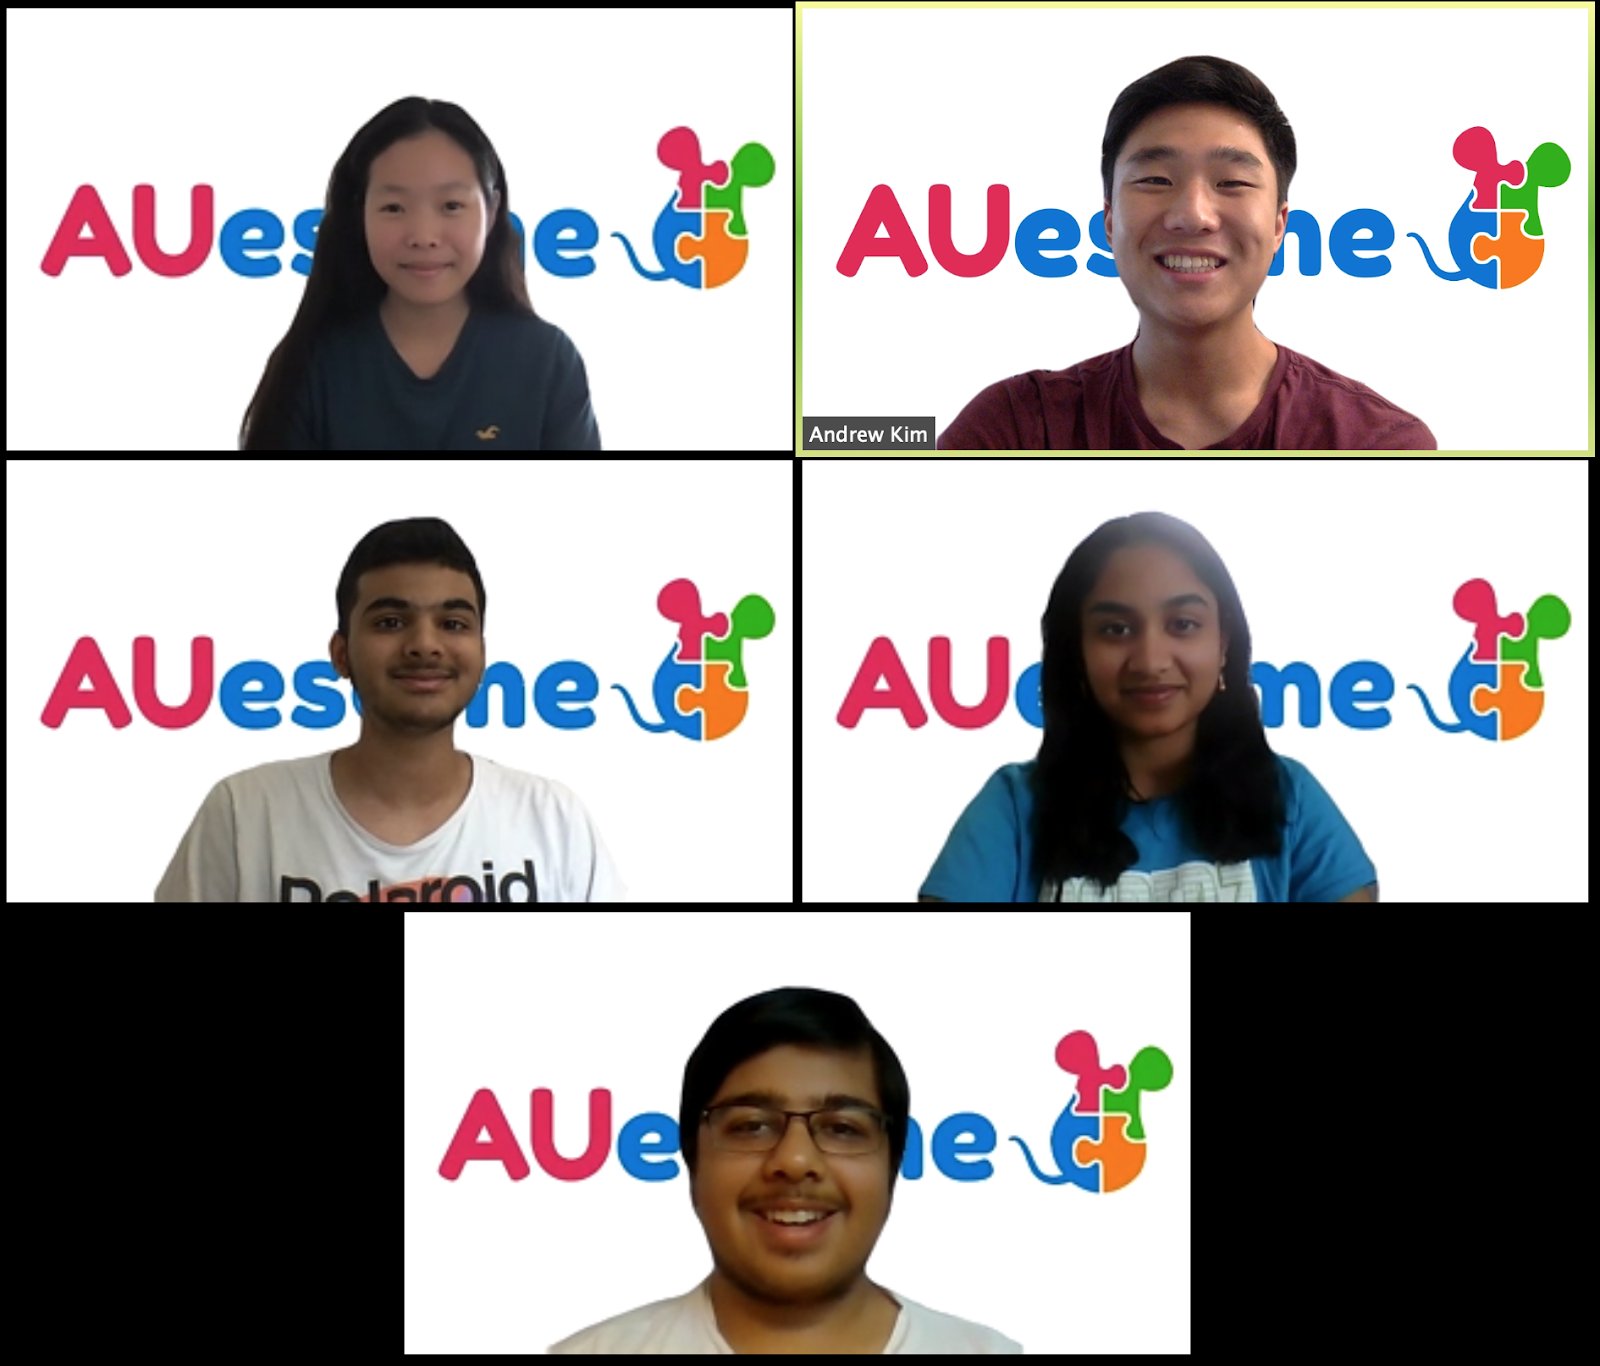 AUesome startup team